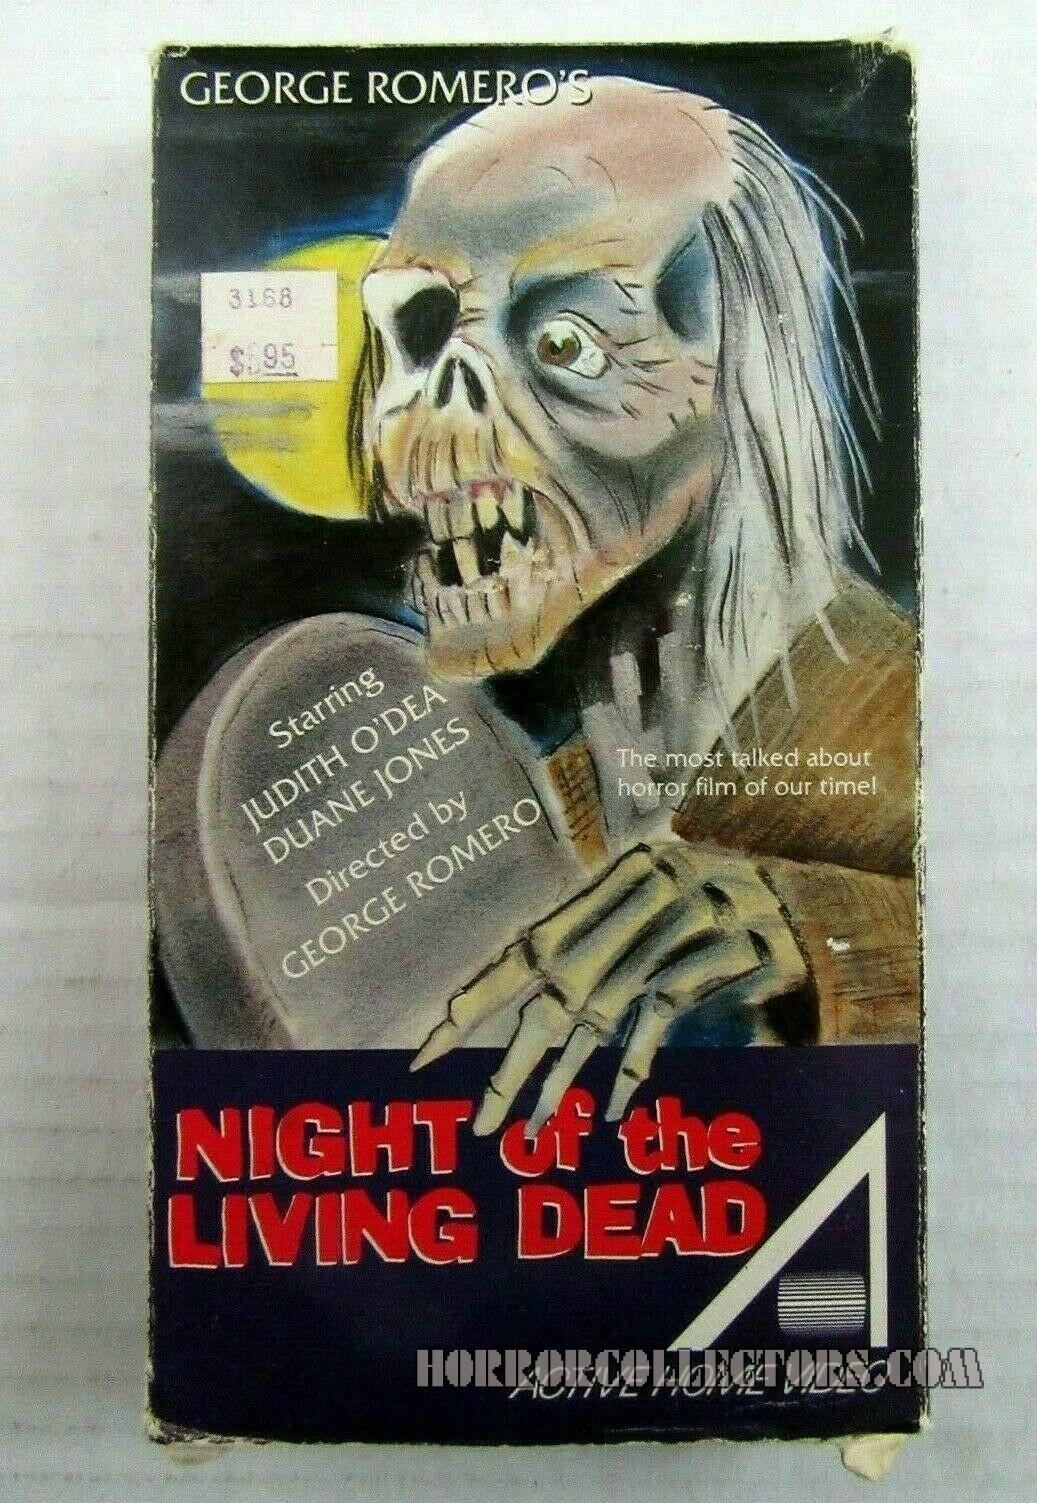 NIGHT OF THE LIVING DEAD Active Home Video